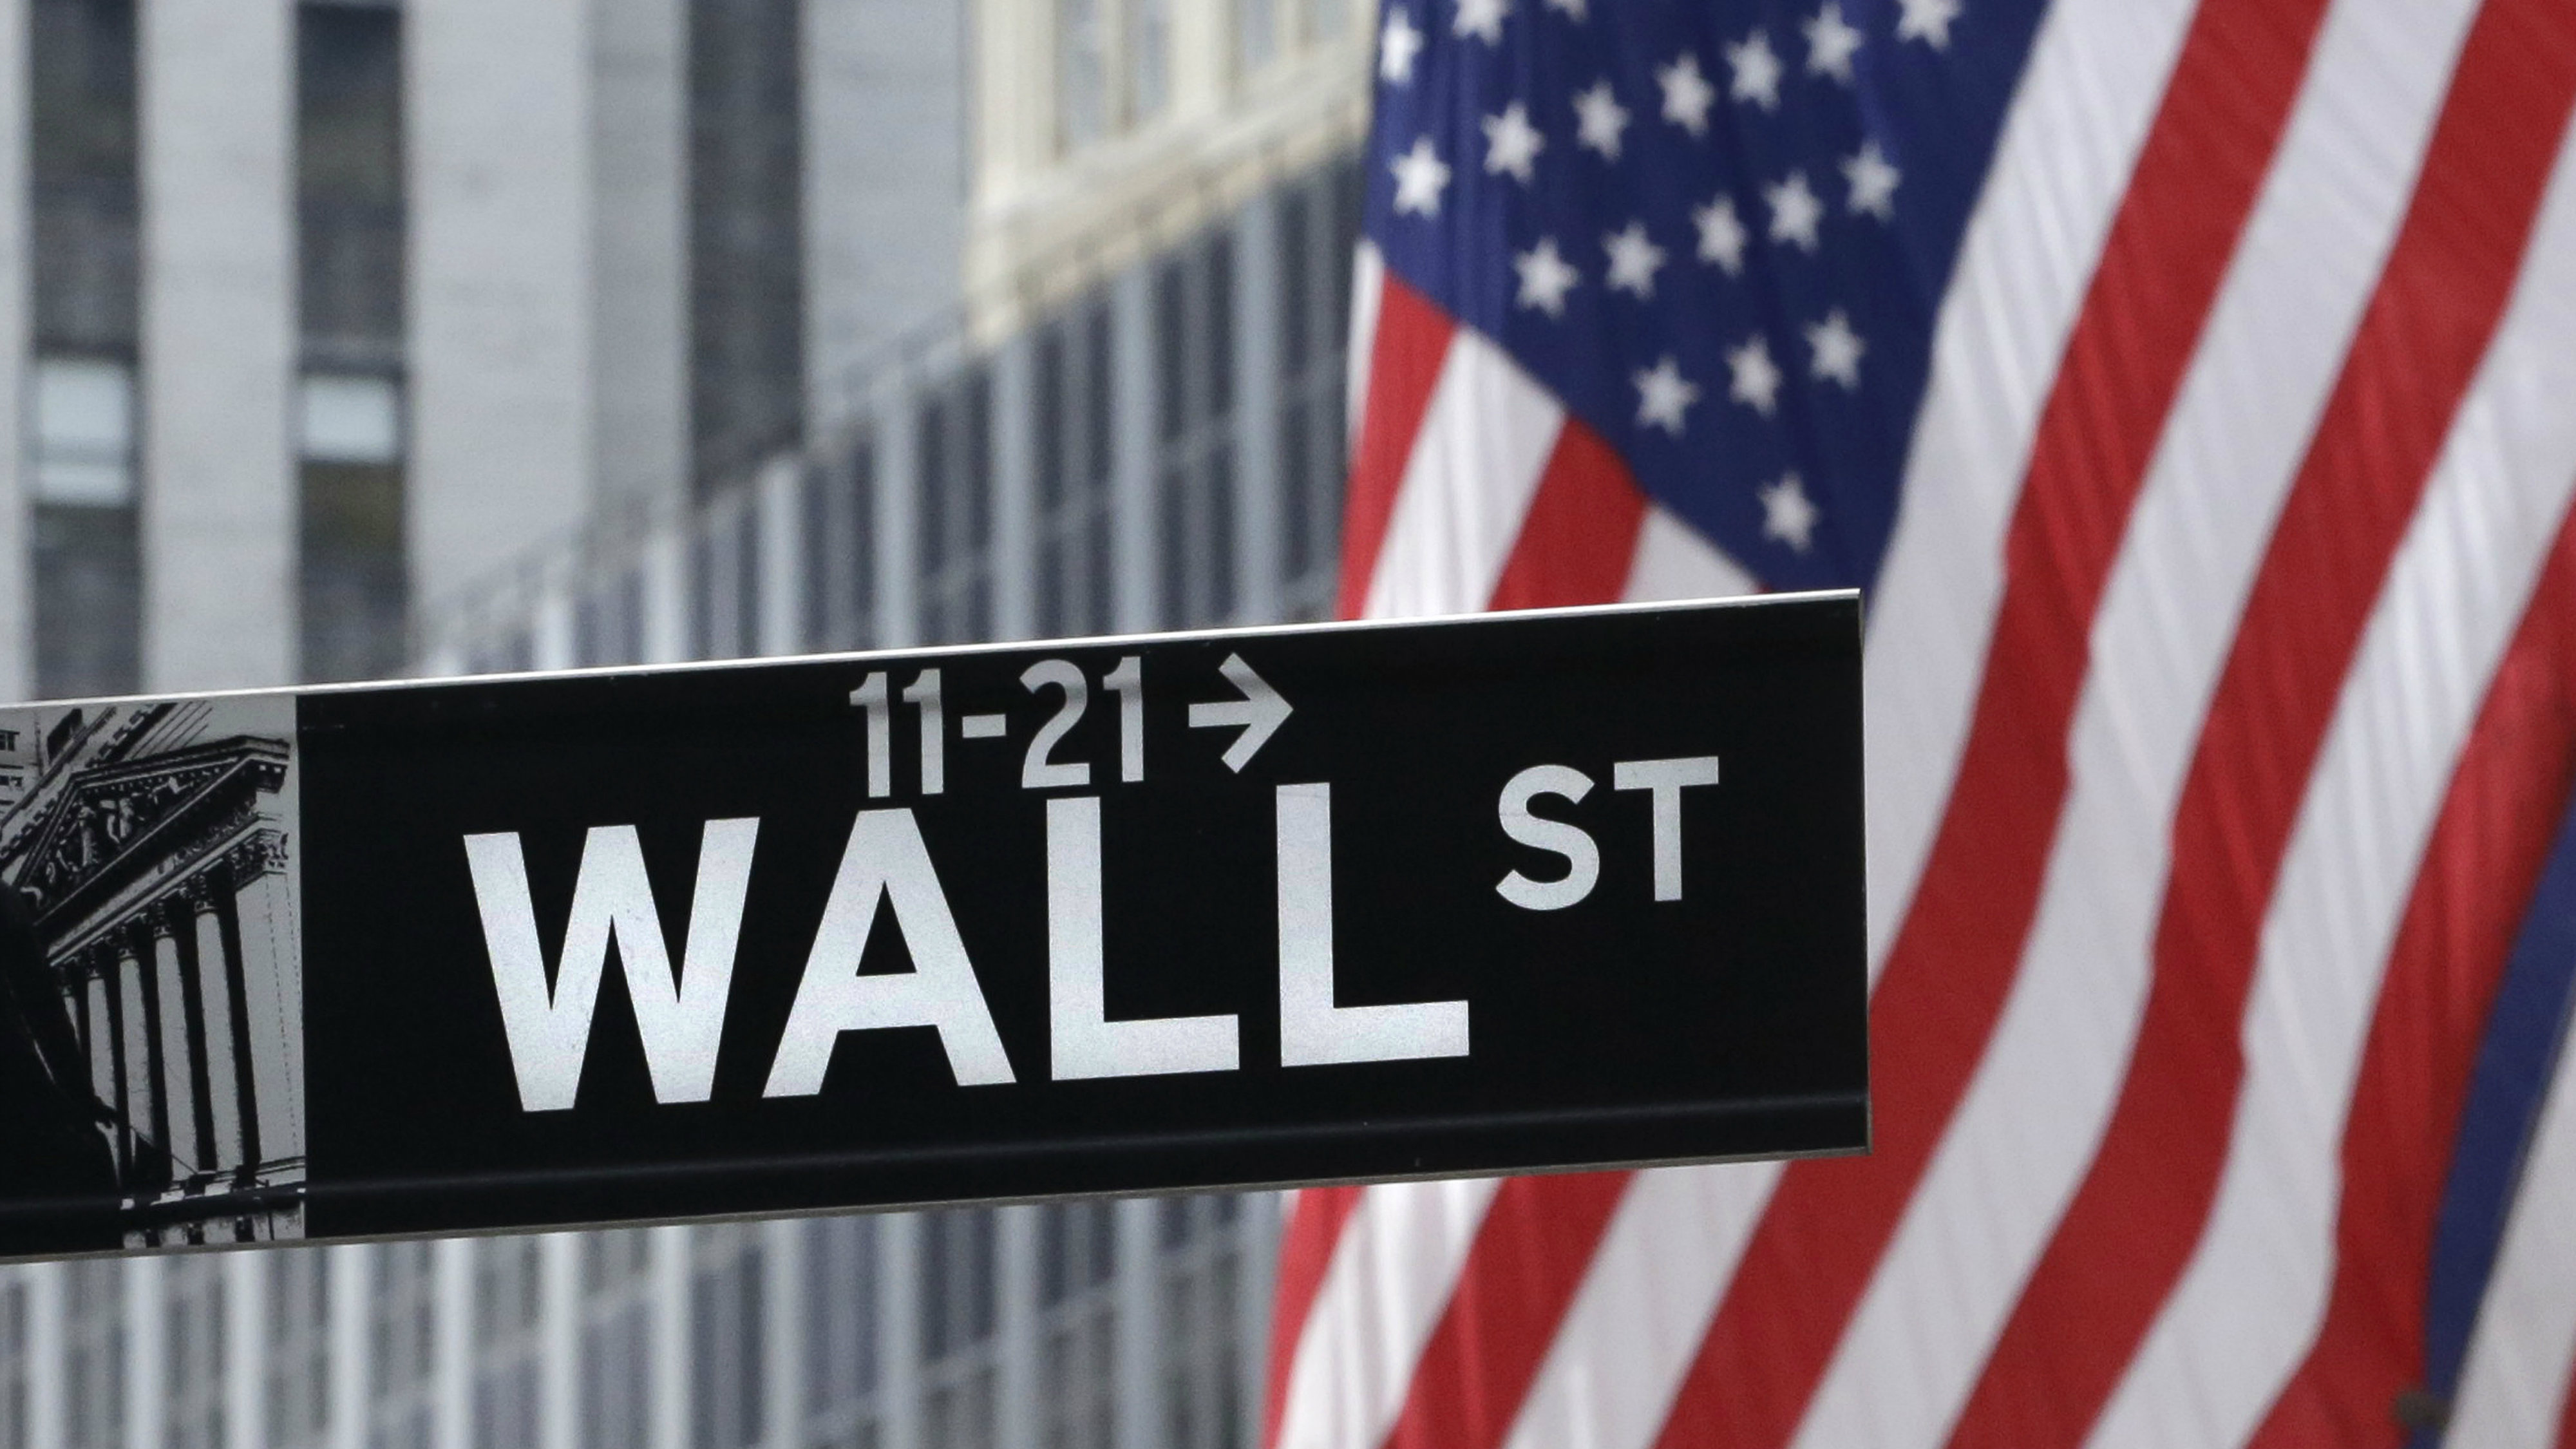 Wall Street sign with US flag behind it